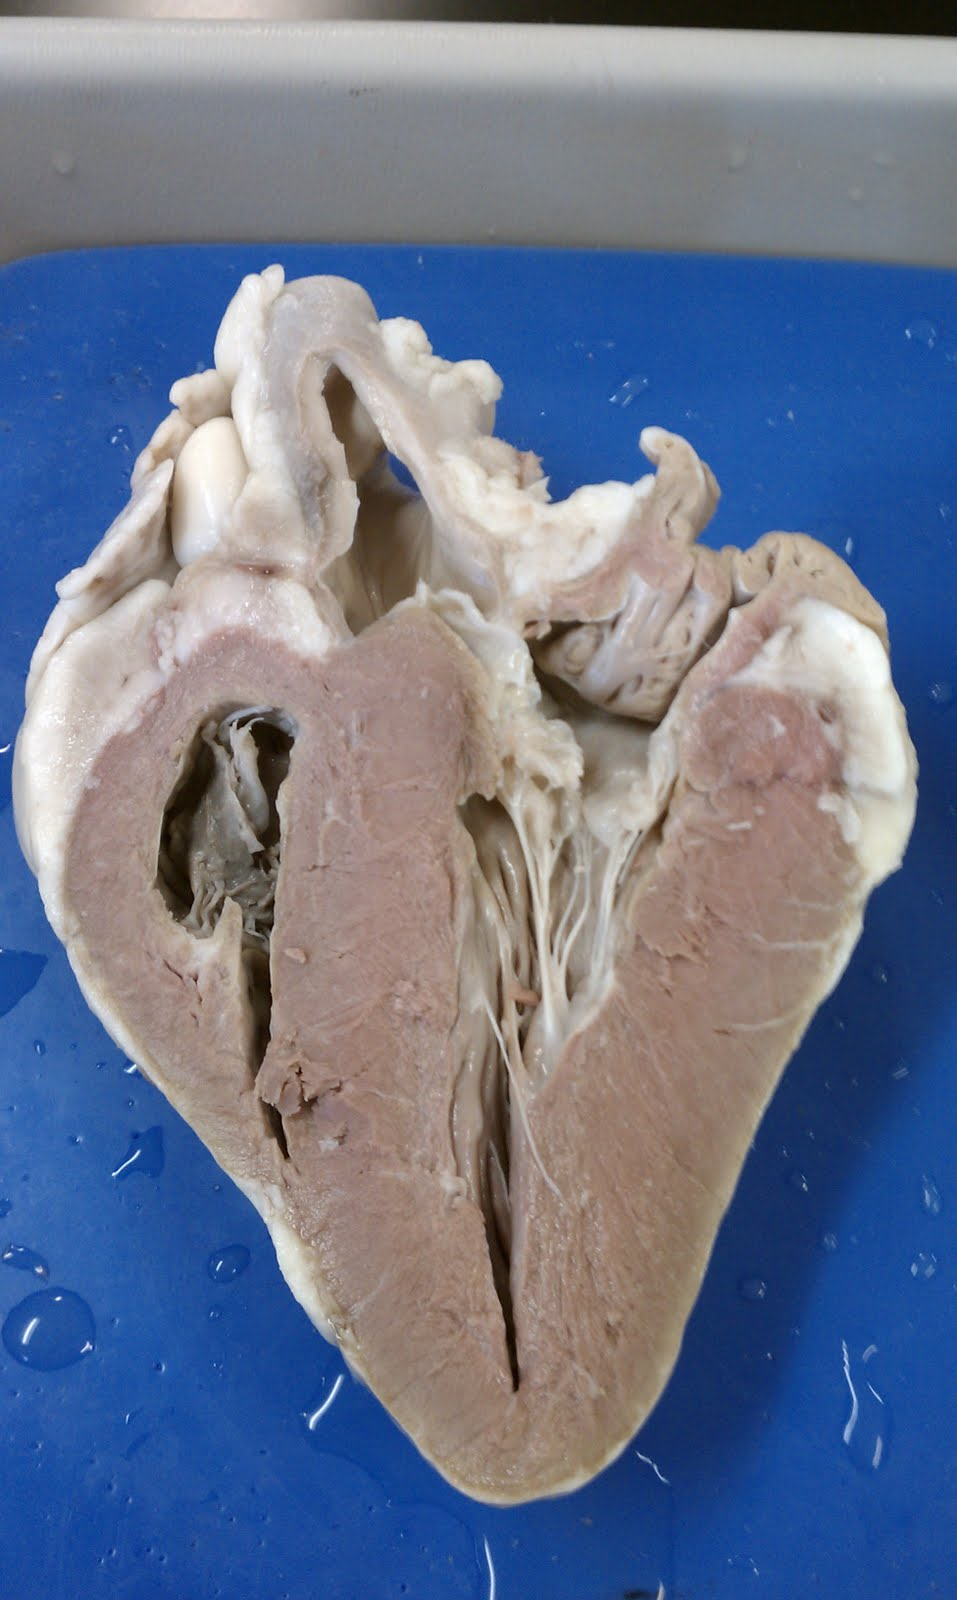 Sheep heart pictures to pin on pinterest thepinsta pics for sheep heart labeling quiz 957x1600 ccuart Image collections